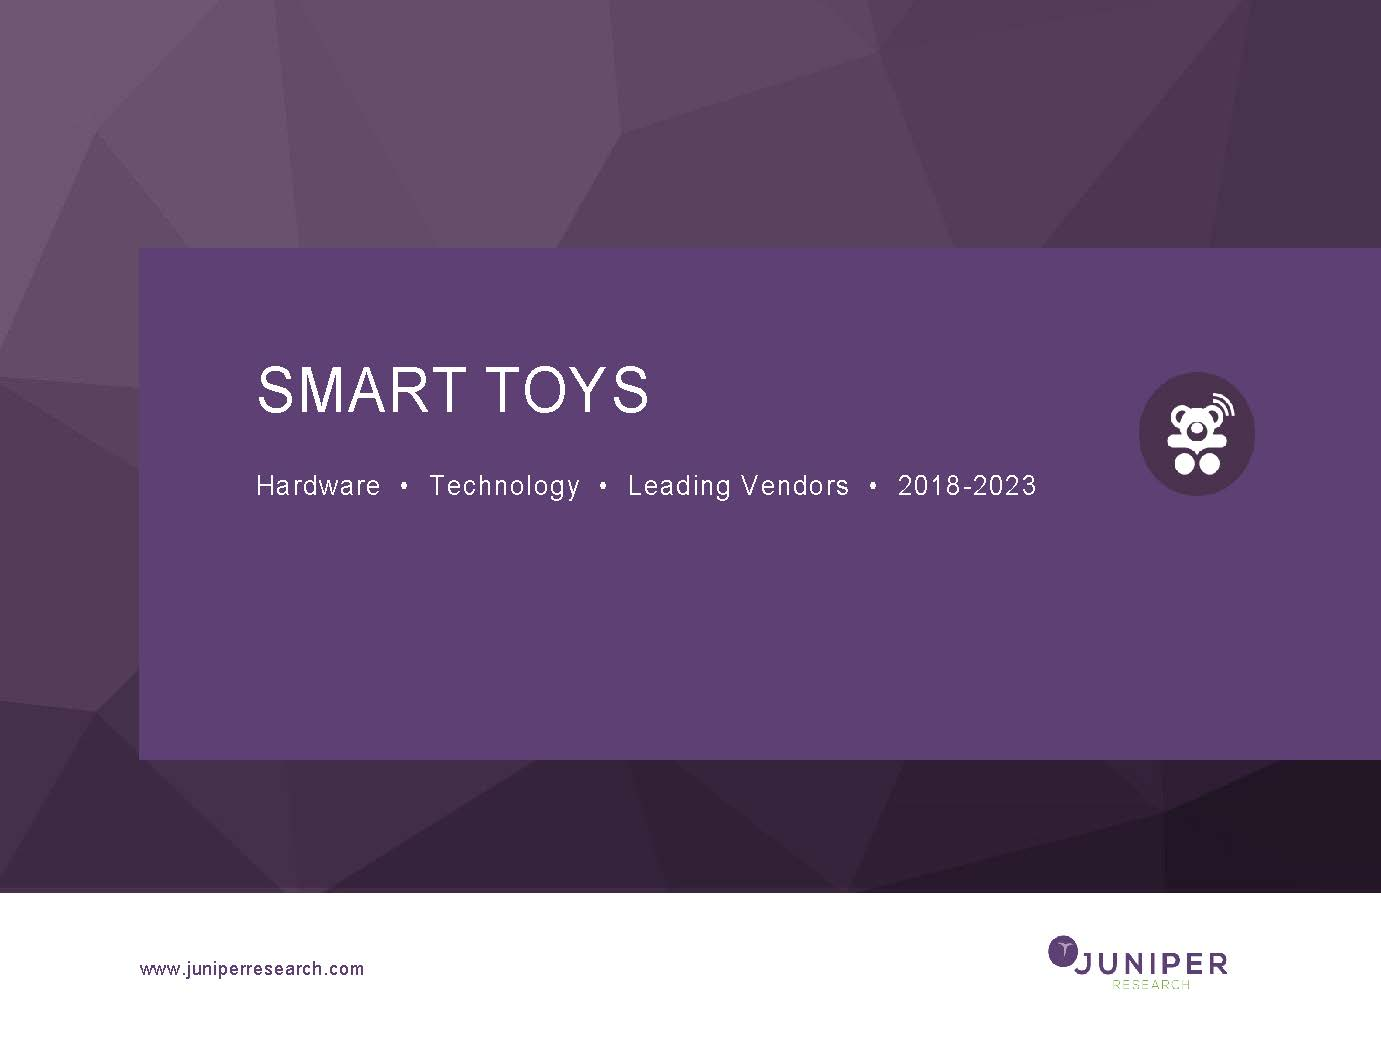 Smart Toys: Hardware, Technology & Leading Vendors 2018-2023 Full Research Suite